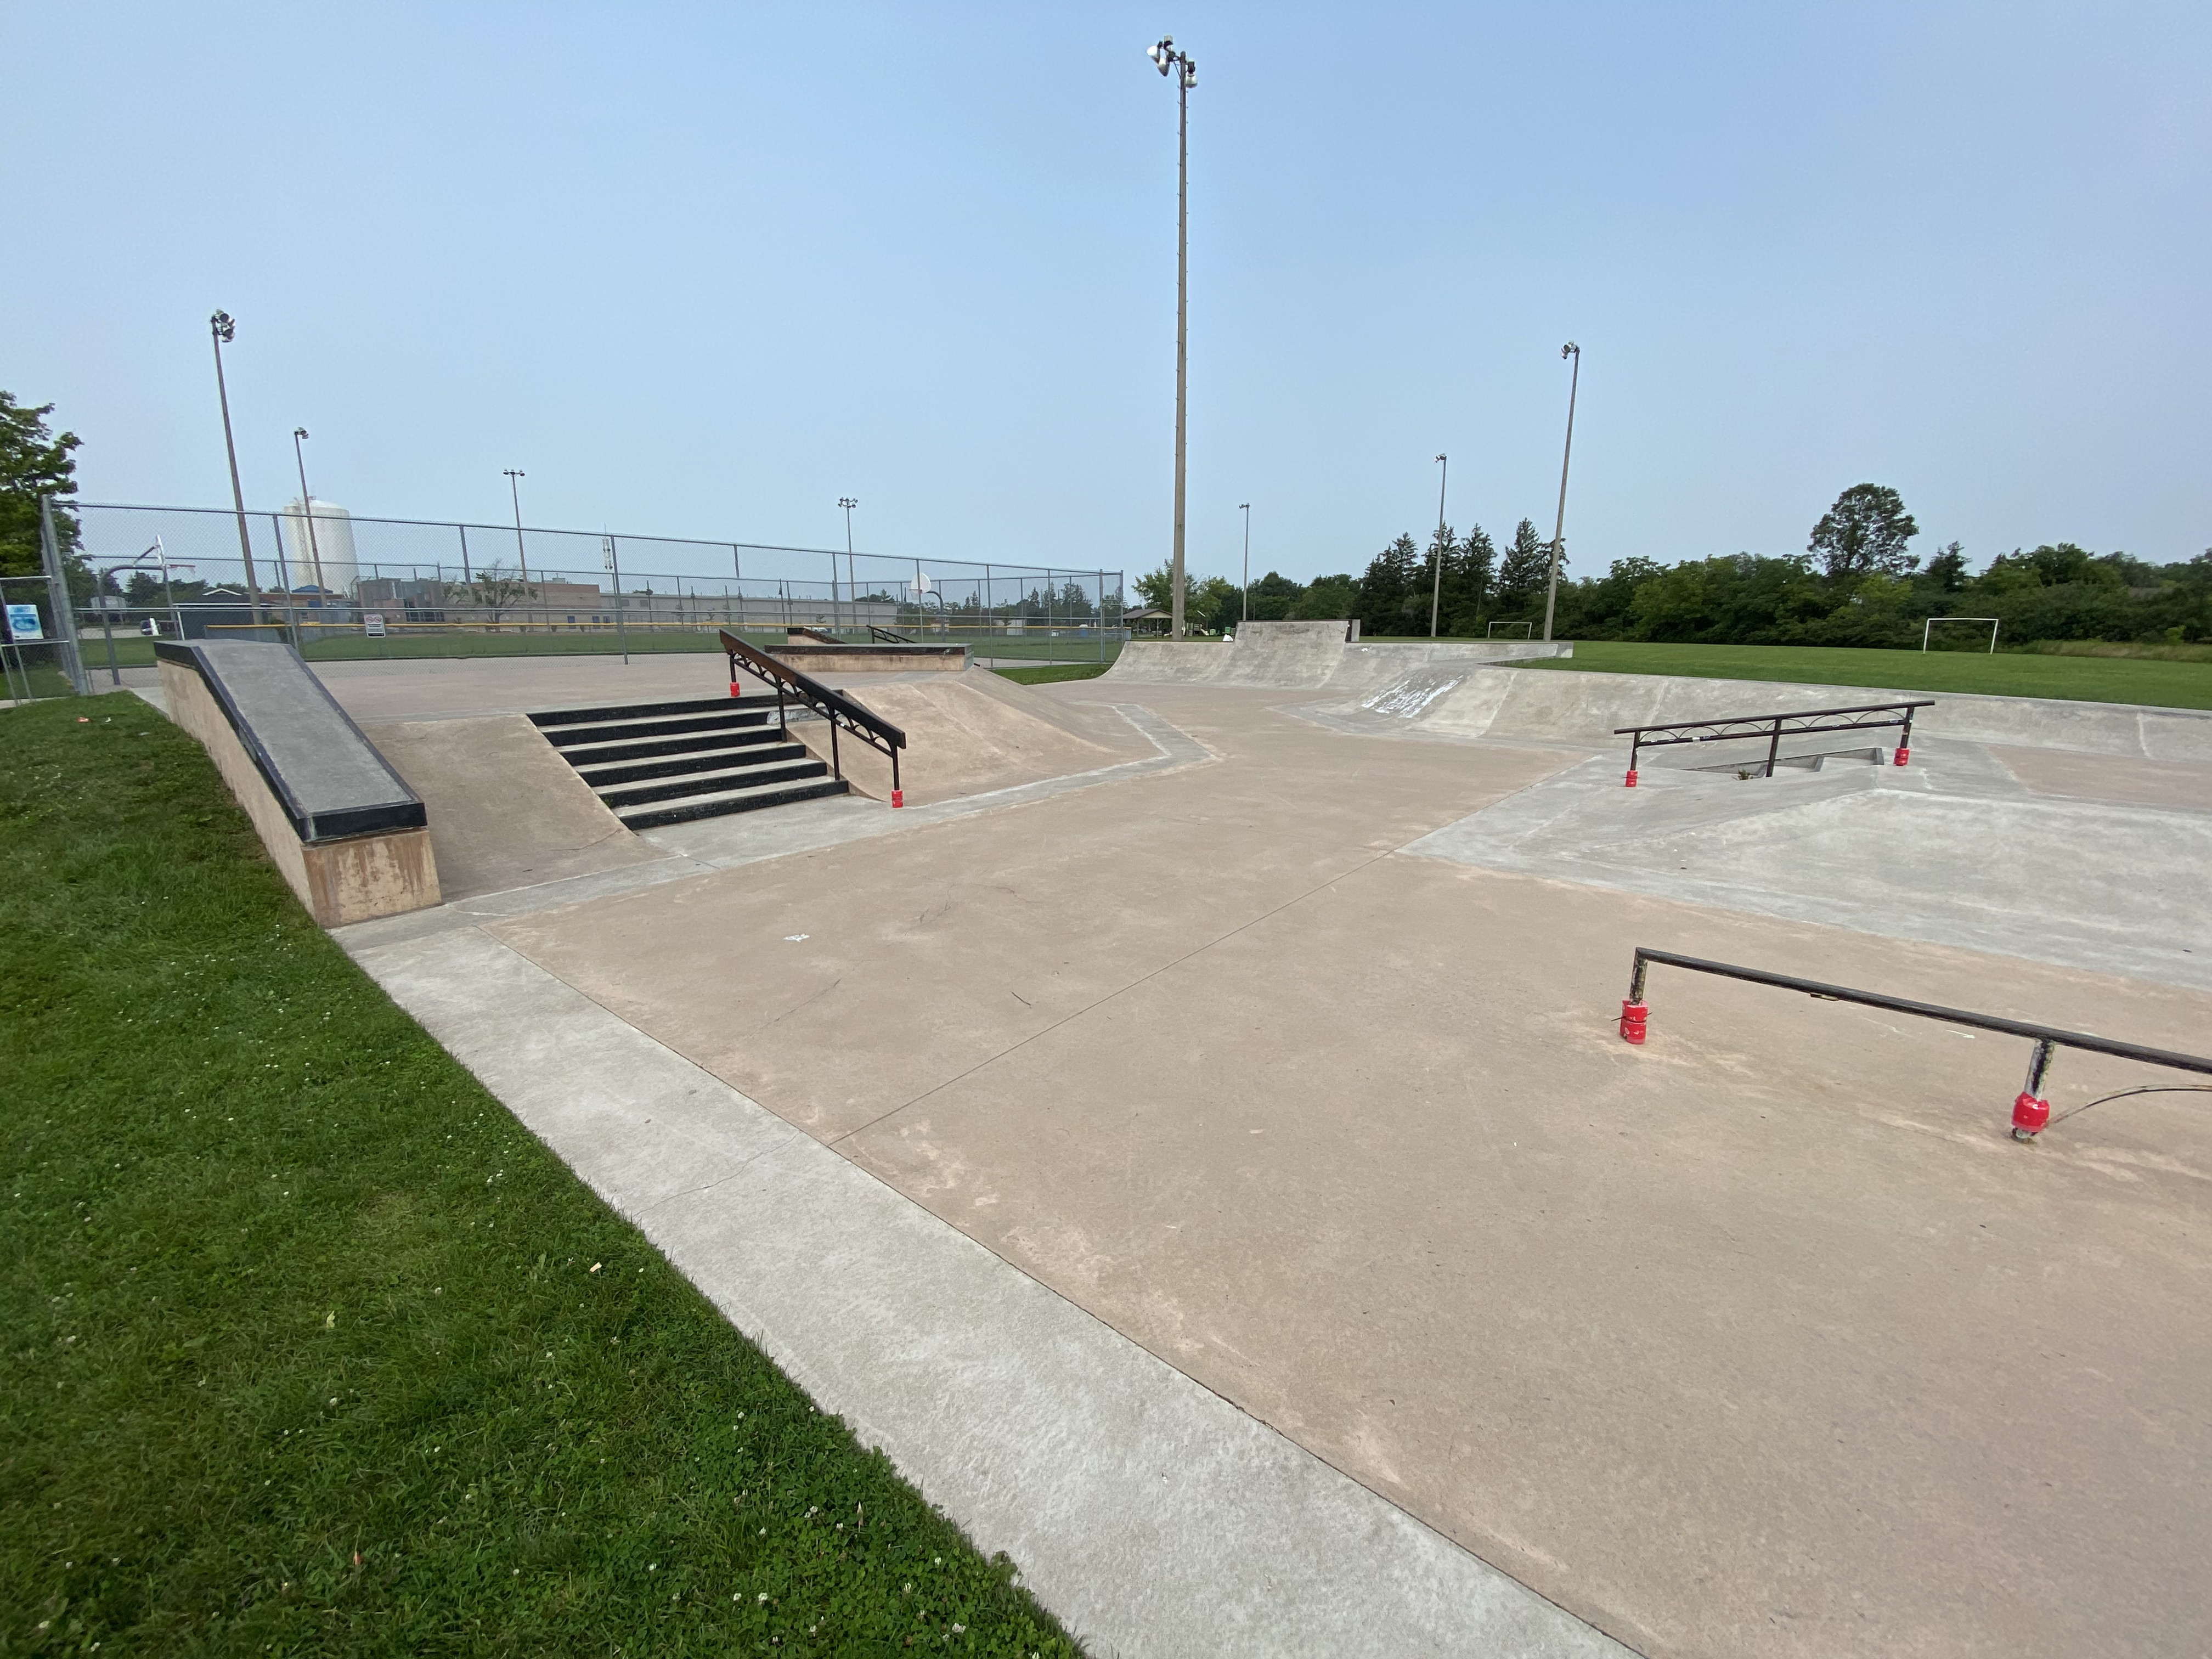 Caledonia Skatepark from middle looking left